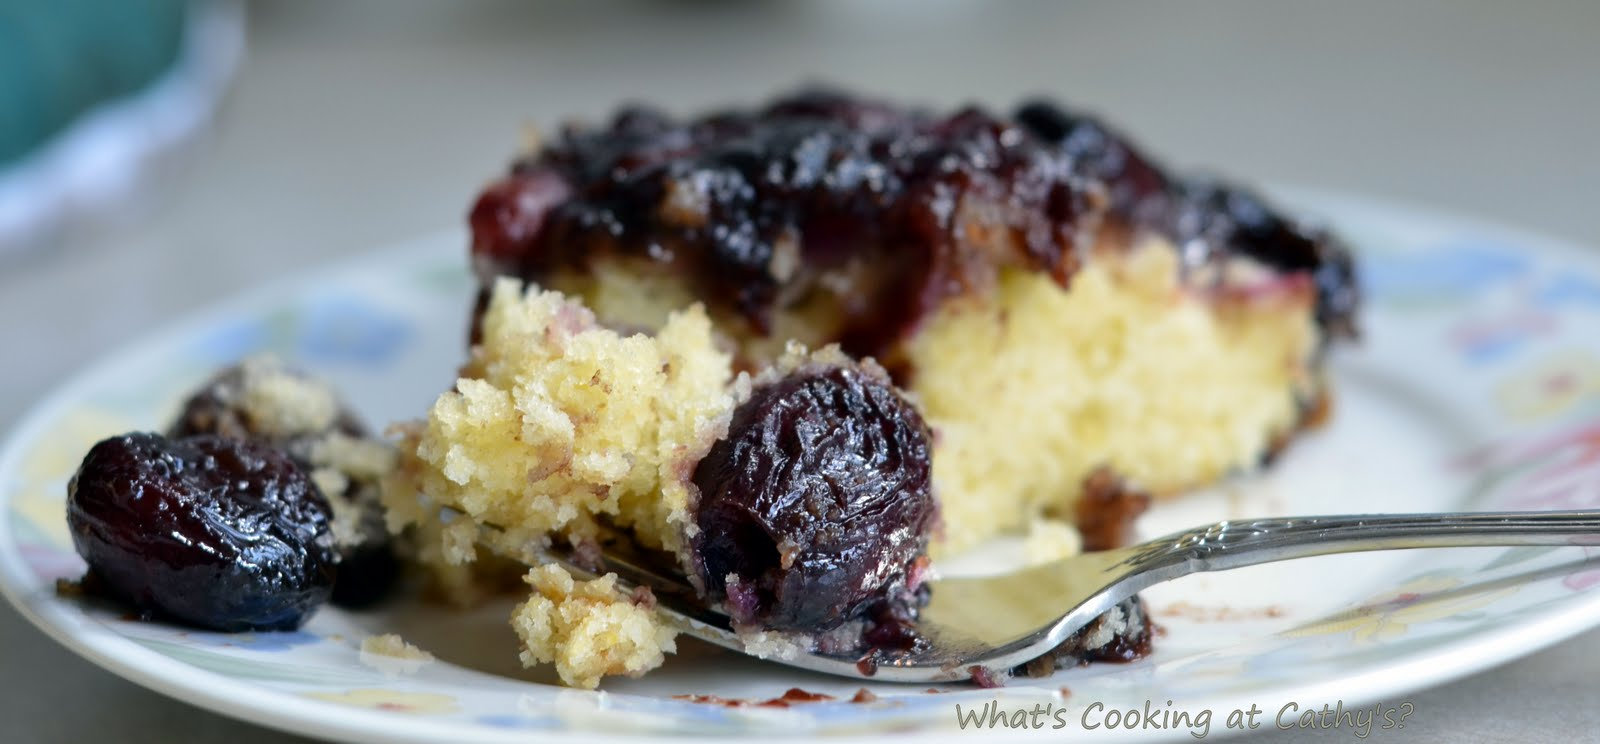 ... down cake cake pineapple upside down cake cherry cornmeal upside down